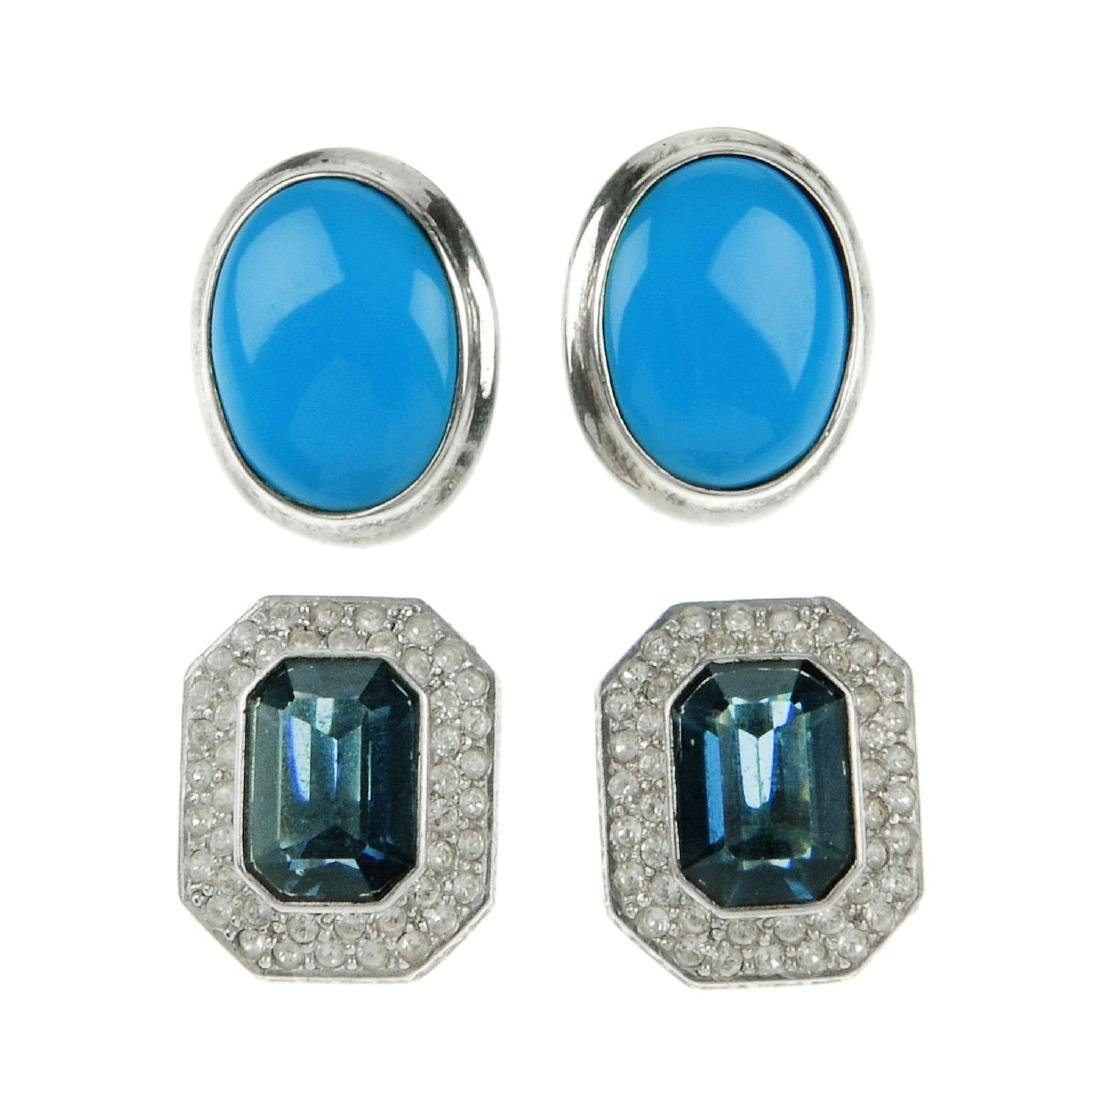 A selection of silver and white metal earrings. To